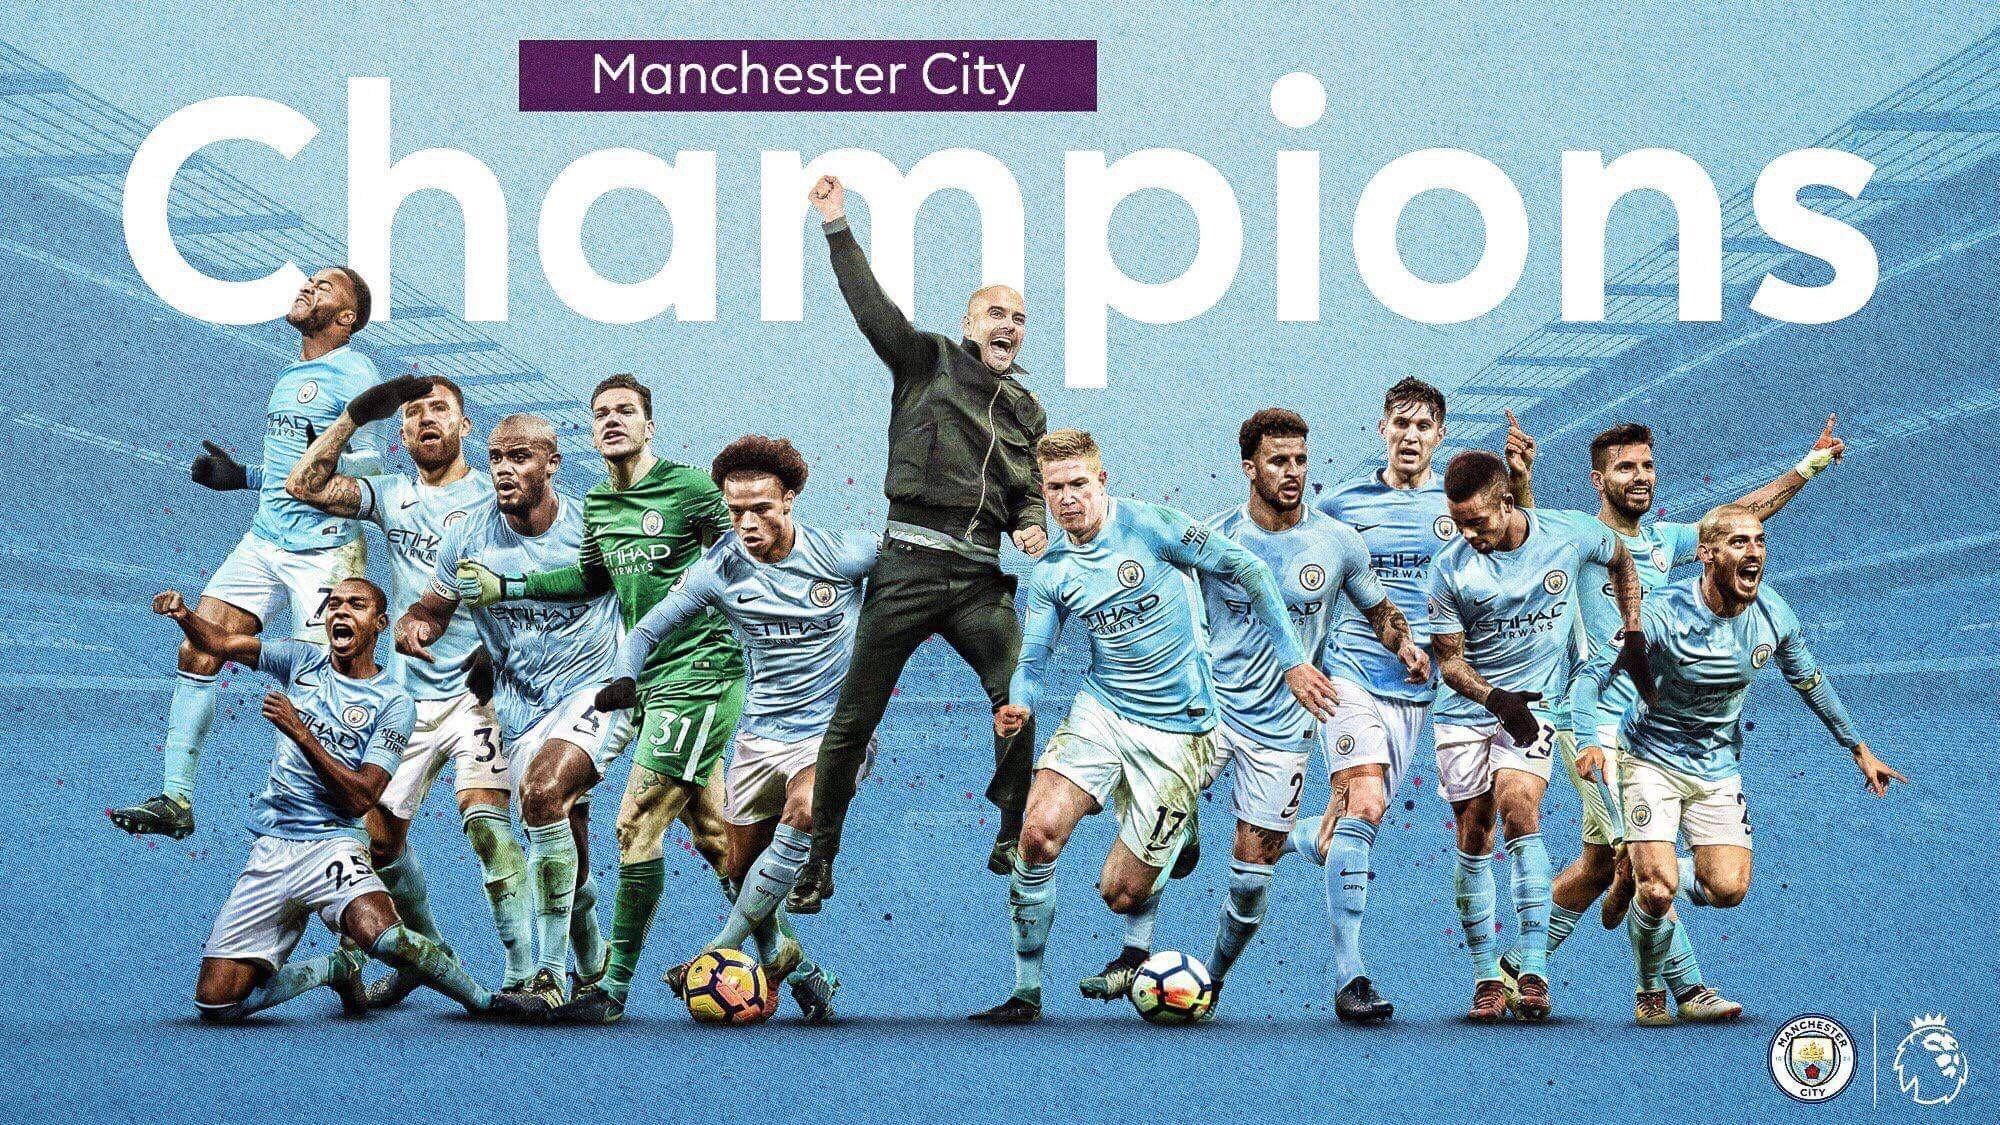 Man City Wallpapers 2015: Manchester City 2018 Wallpapers